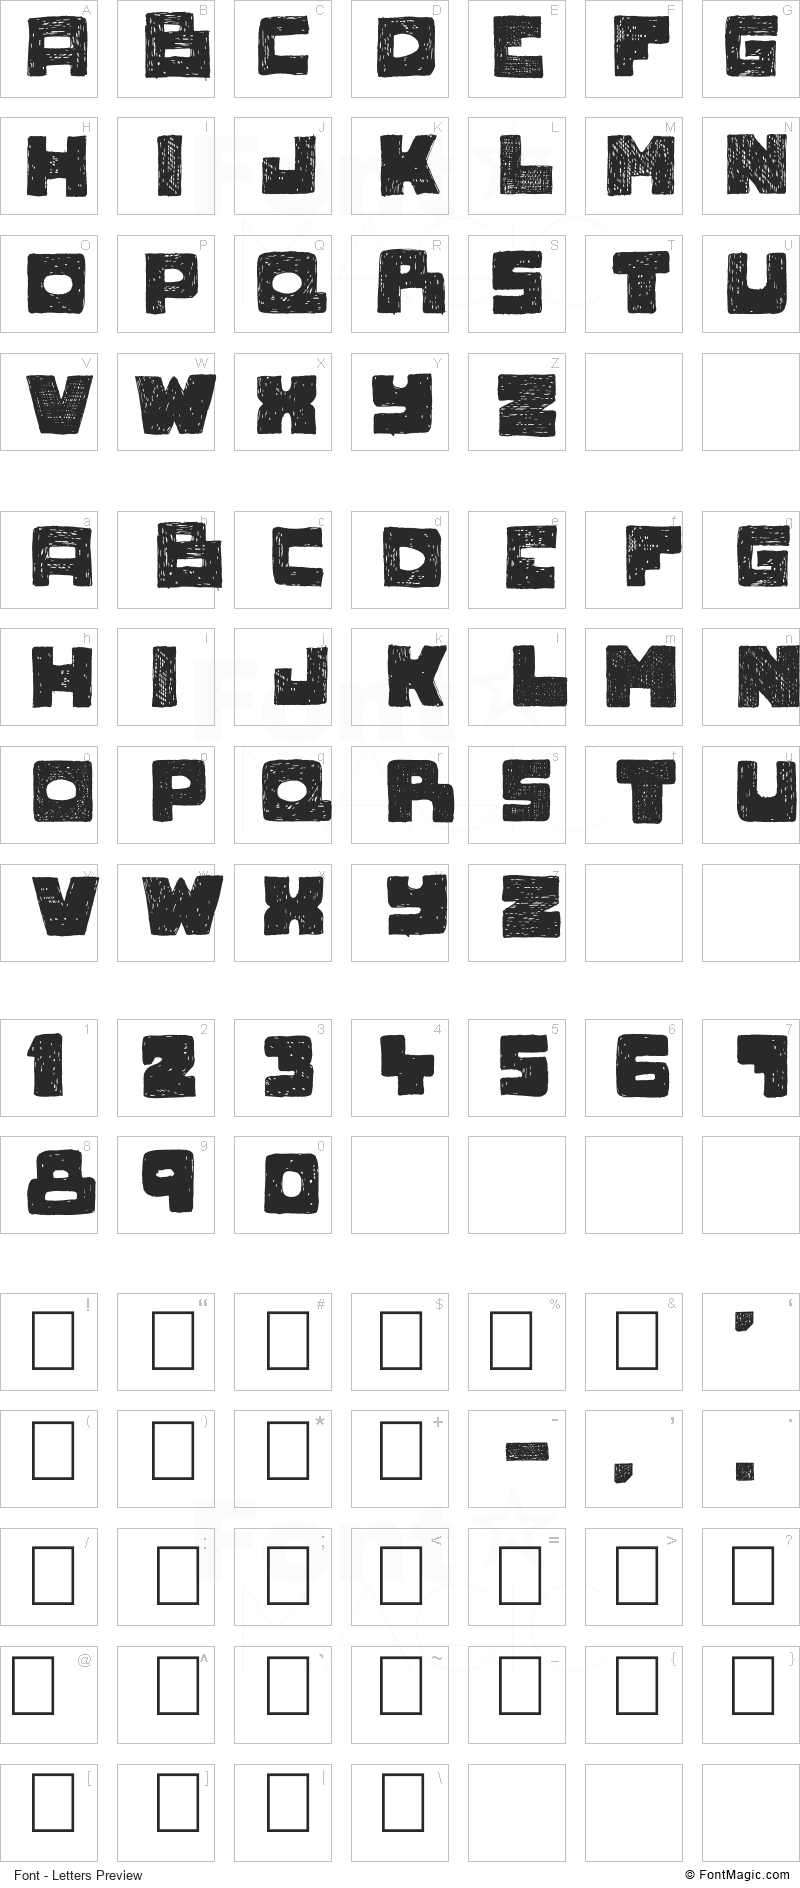 Novlang Font - All Latters Preview Chart